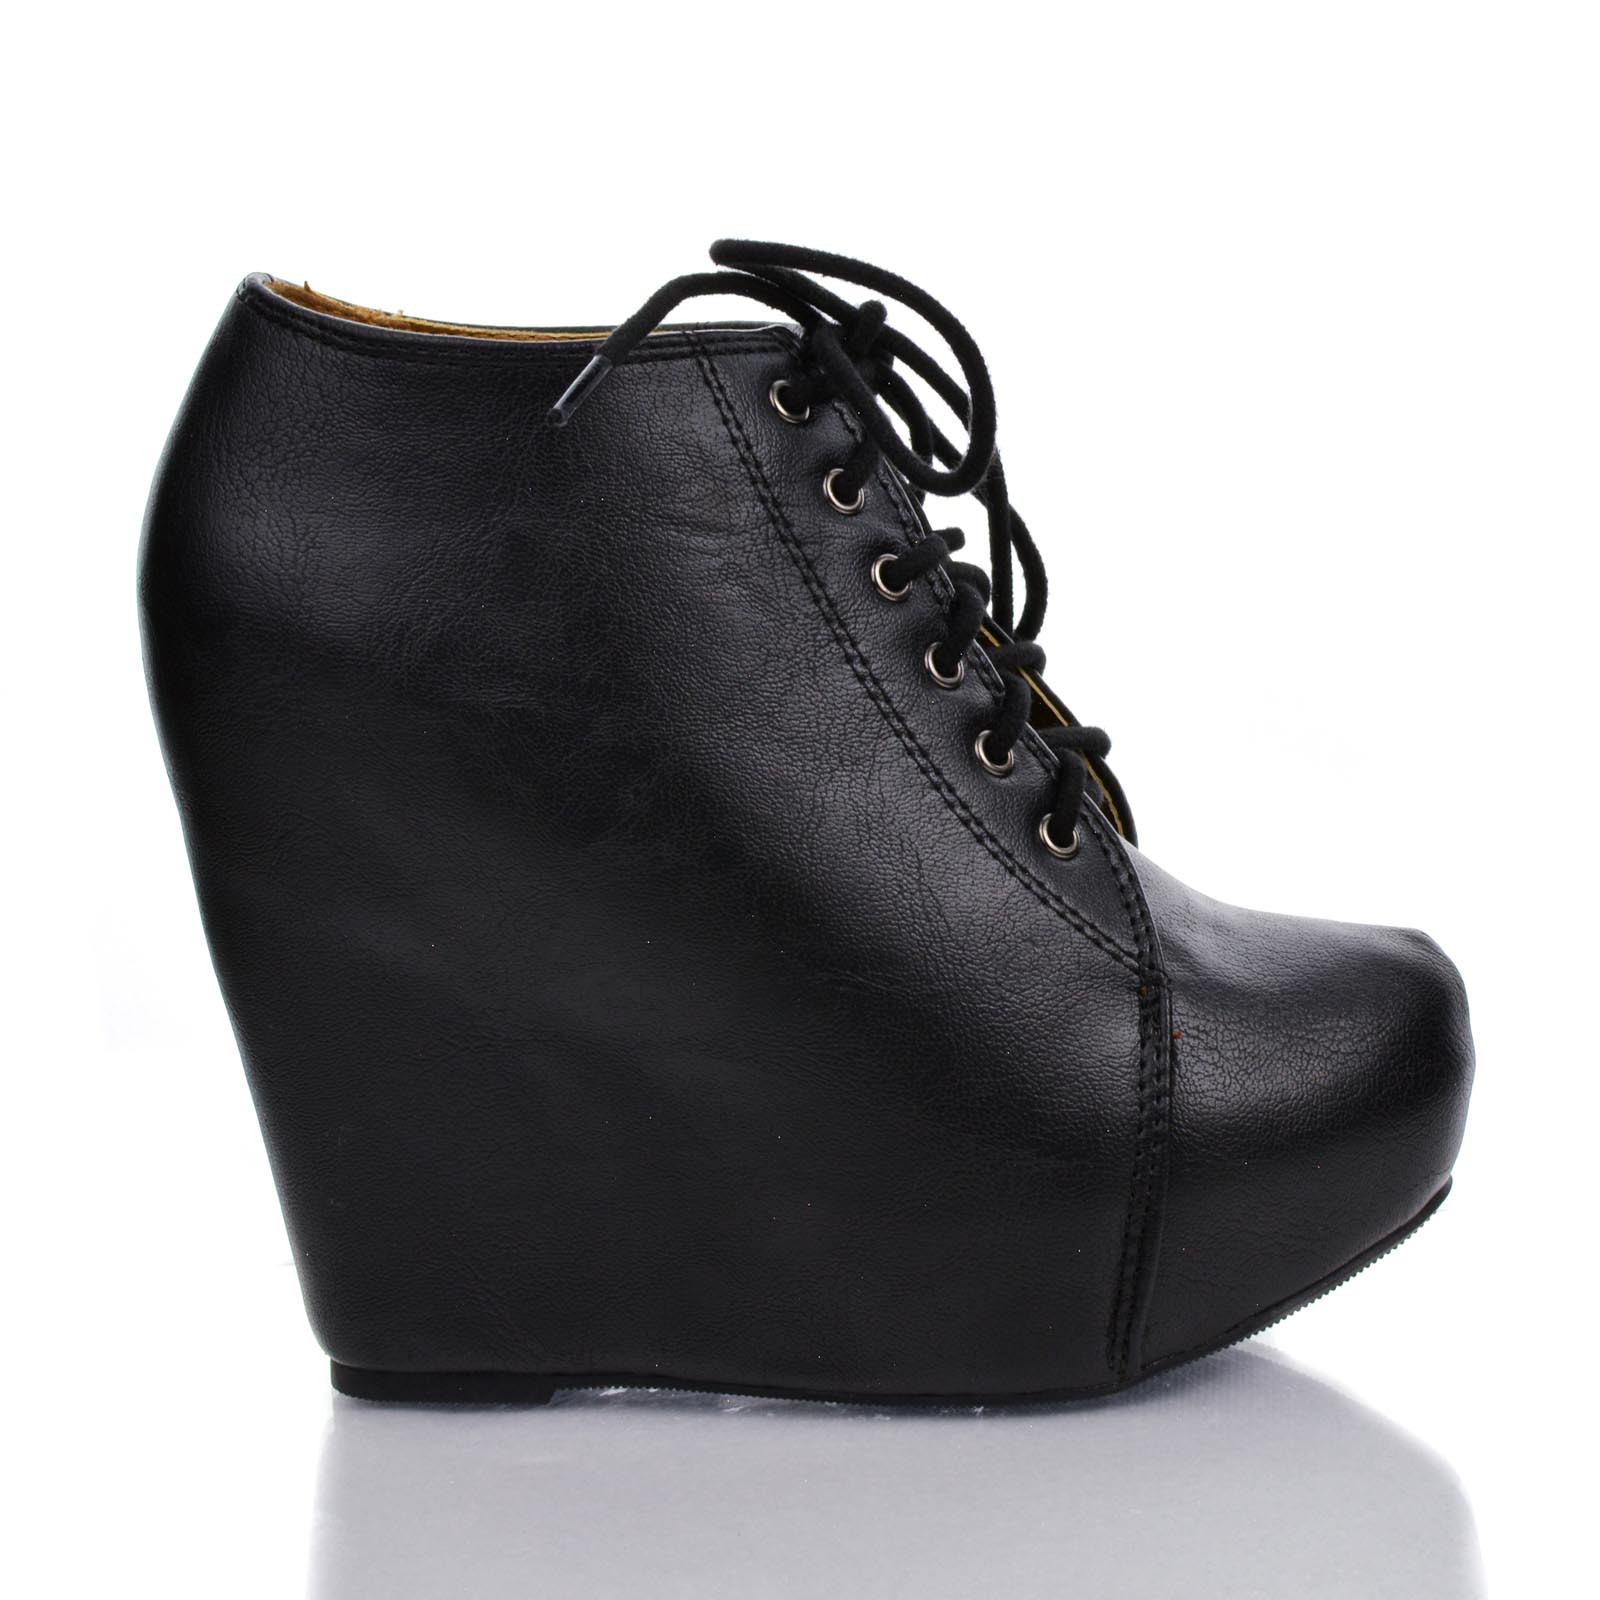 Jello by Soda, Pointed Toe Lace Up Ankle Platform High Hi...